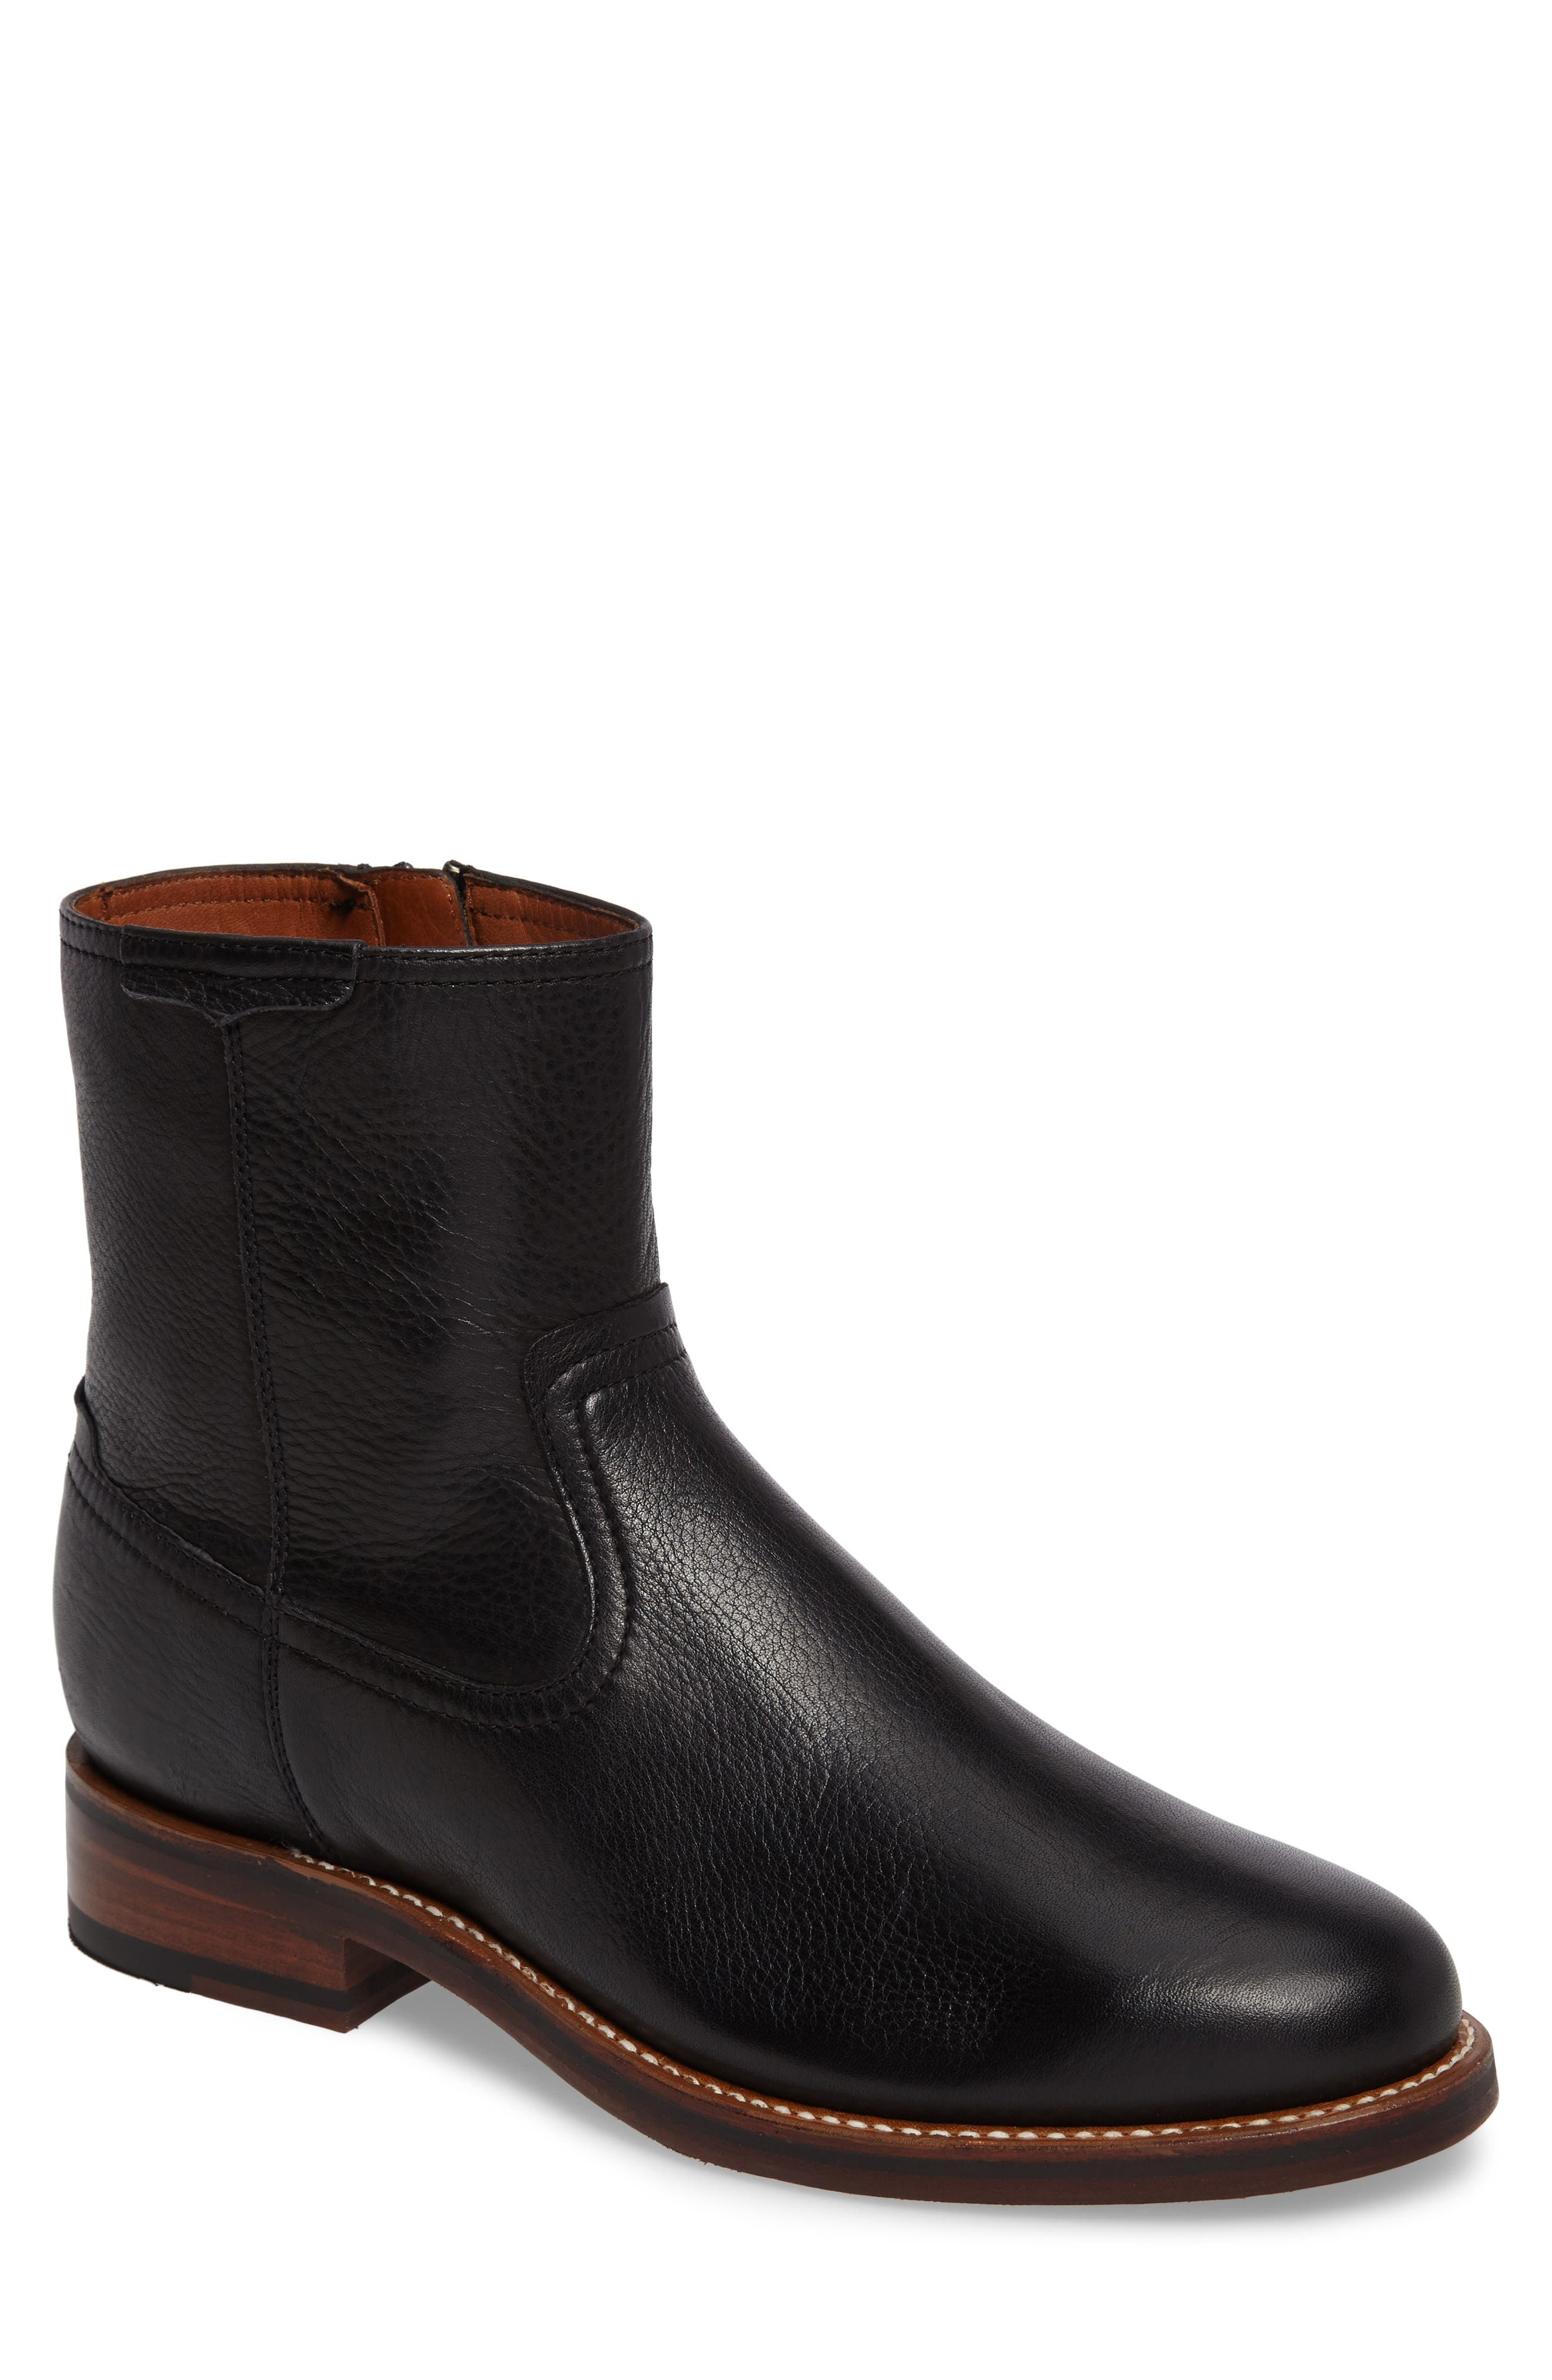 Main Image - Ariat Santa Fe Mid Zip Boot (Men)